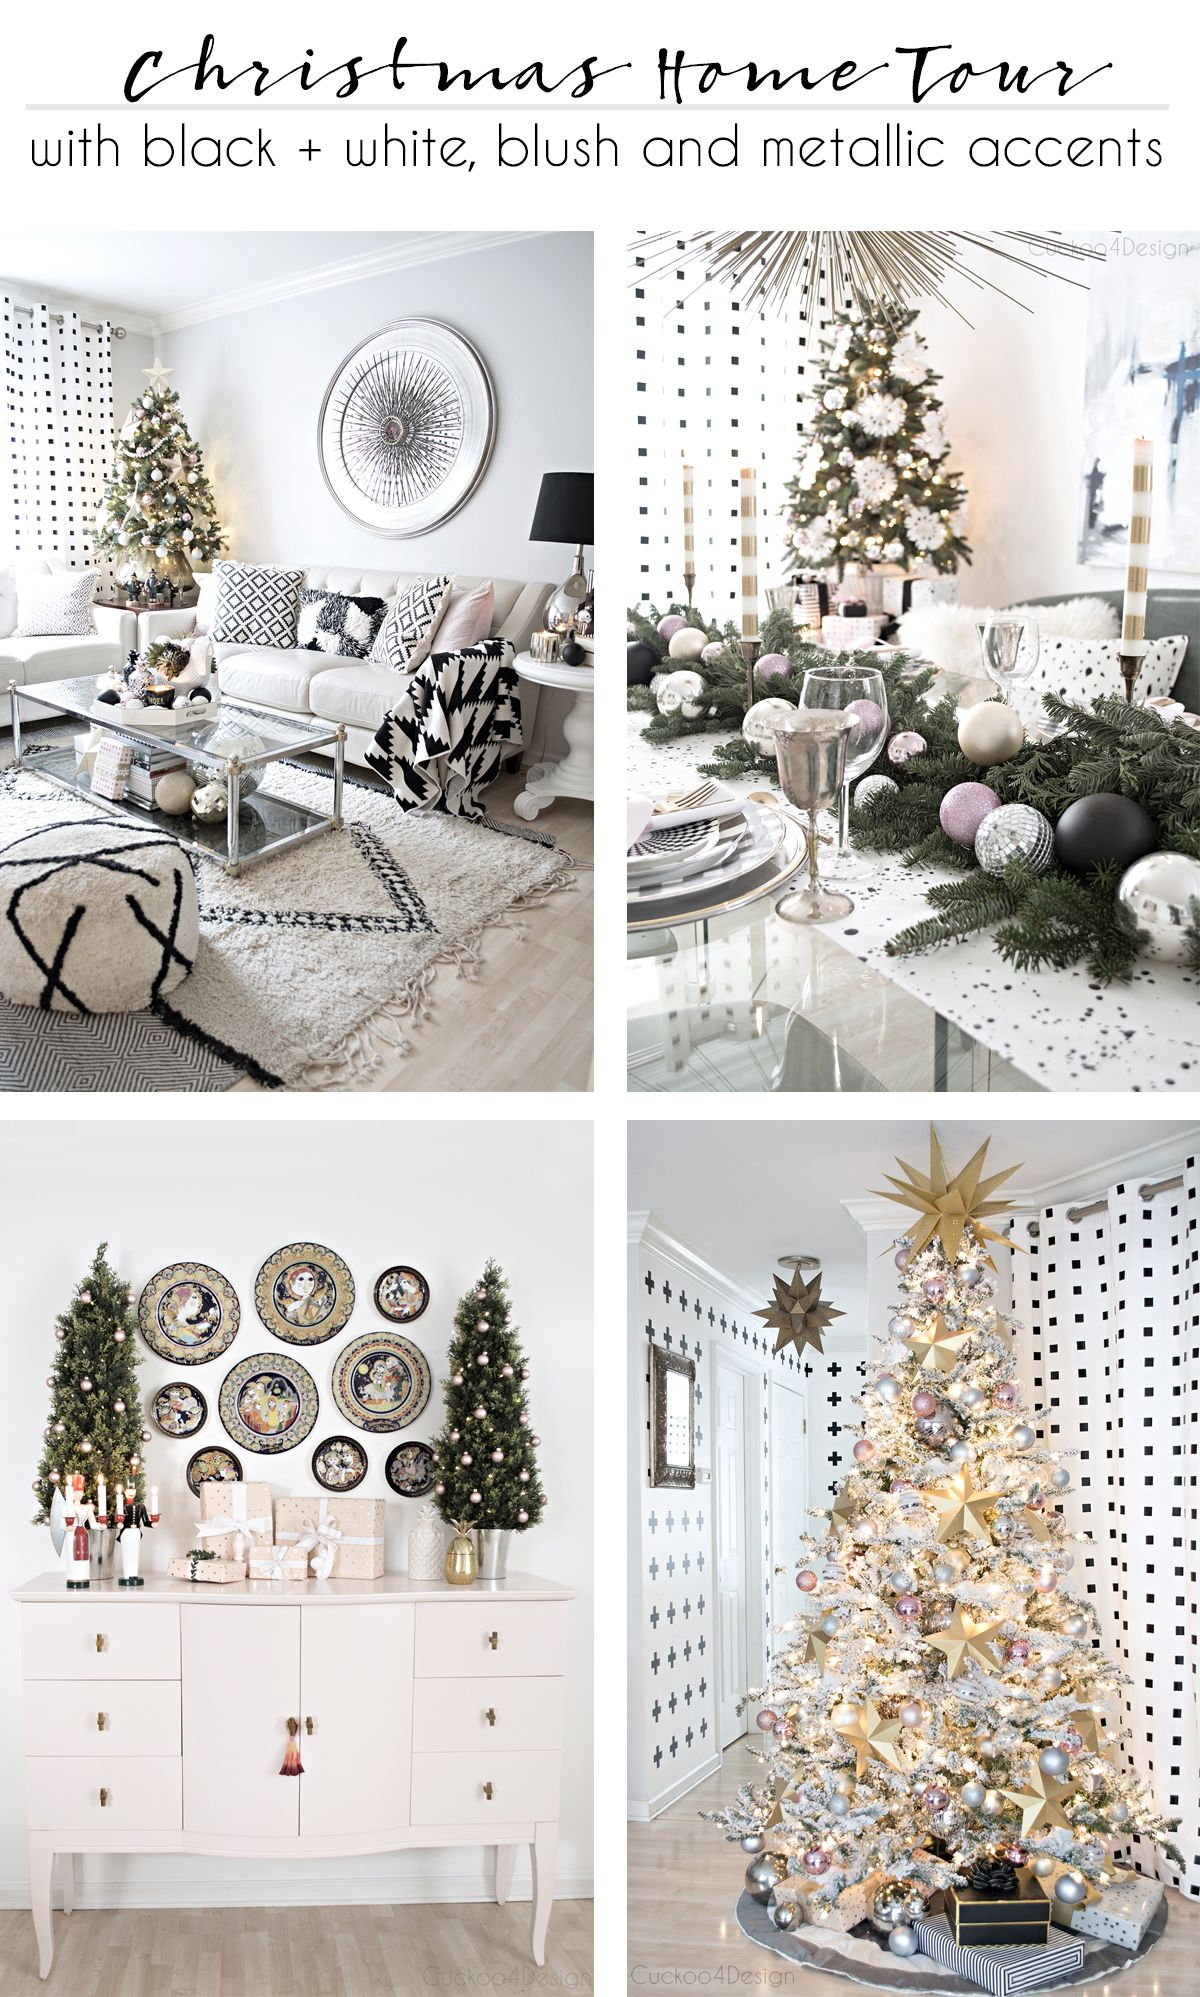 Better Homes and Gardens Christmas Ideas Home Tour | Pinterest ...